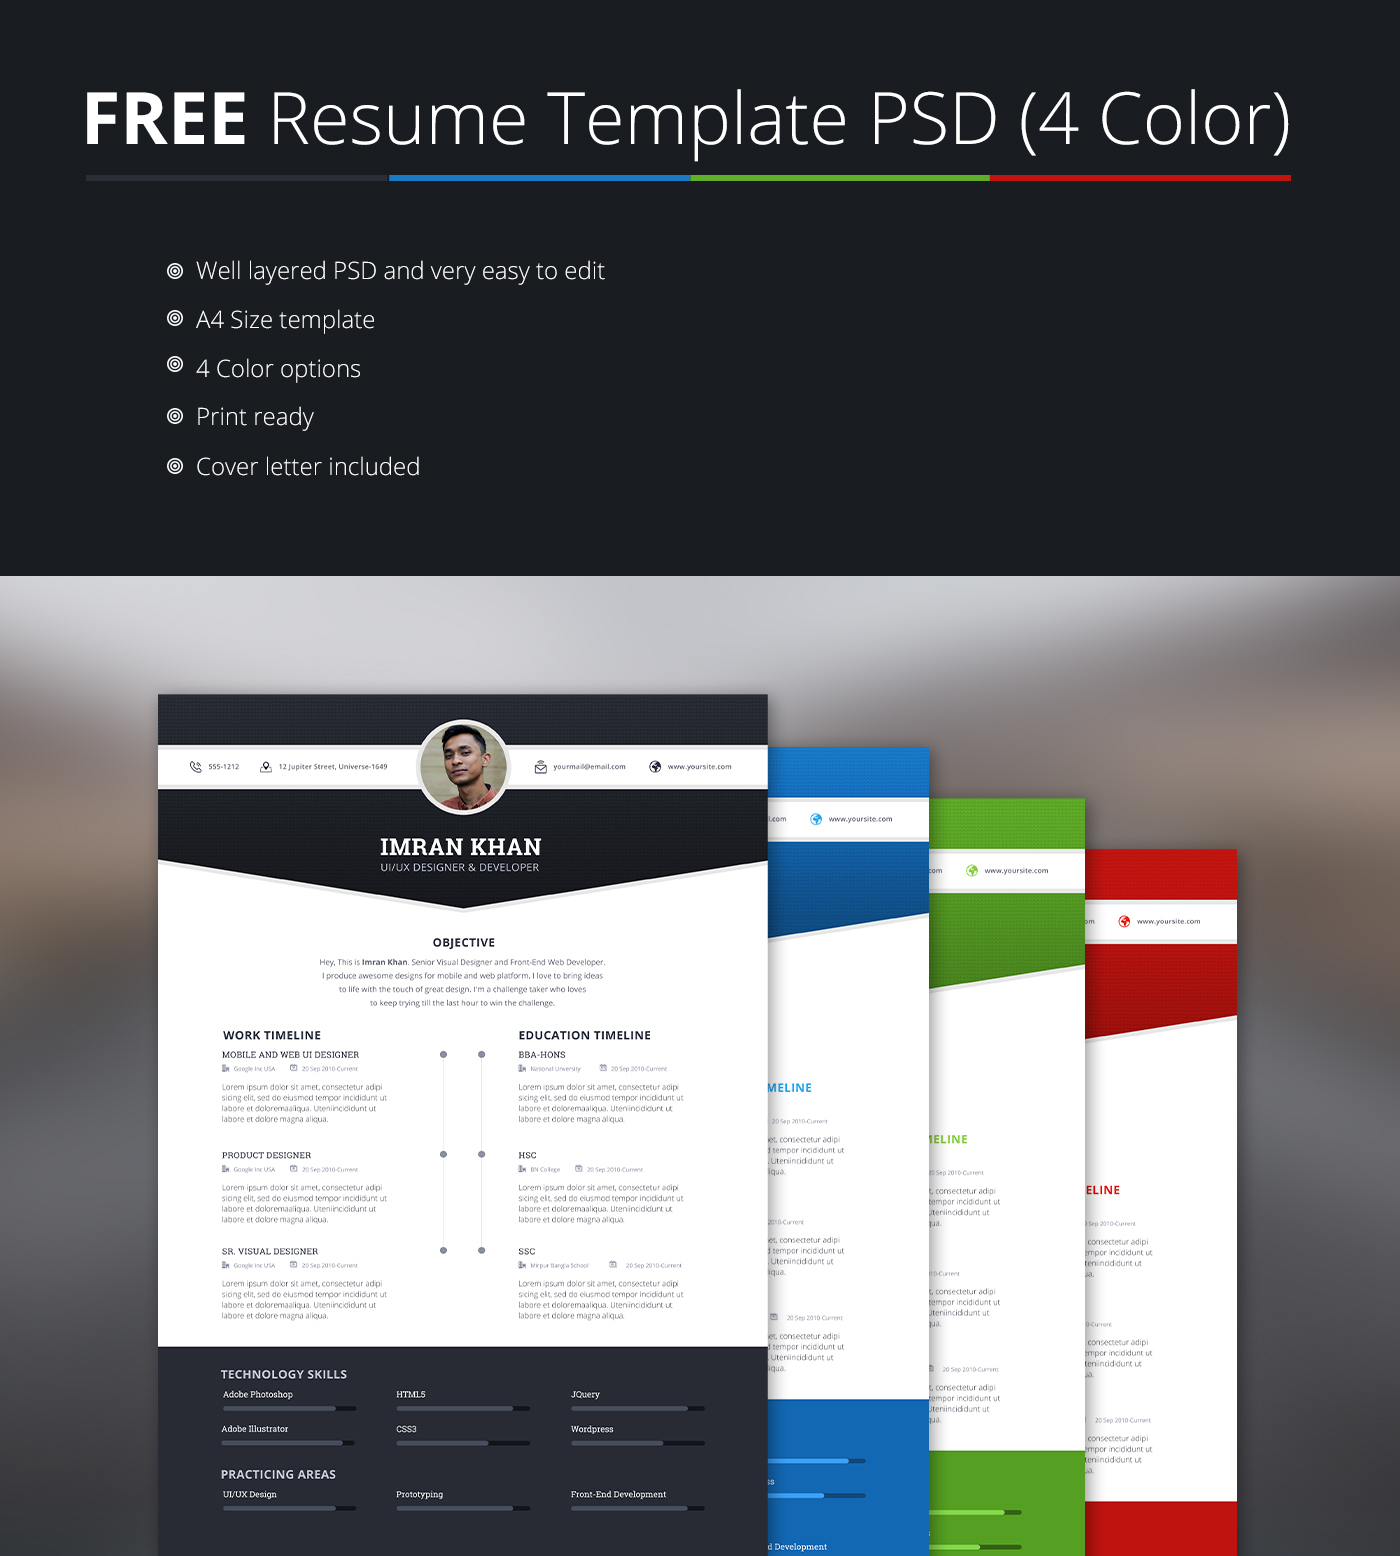 FREE Resume Template PSD (4 Colors) On Behance  Resume Template Psd